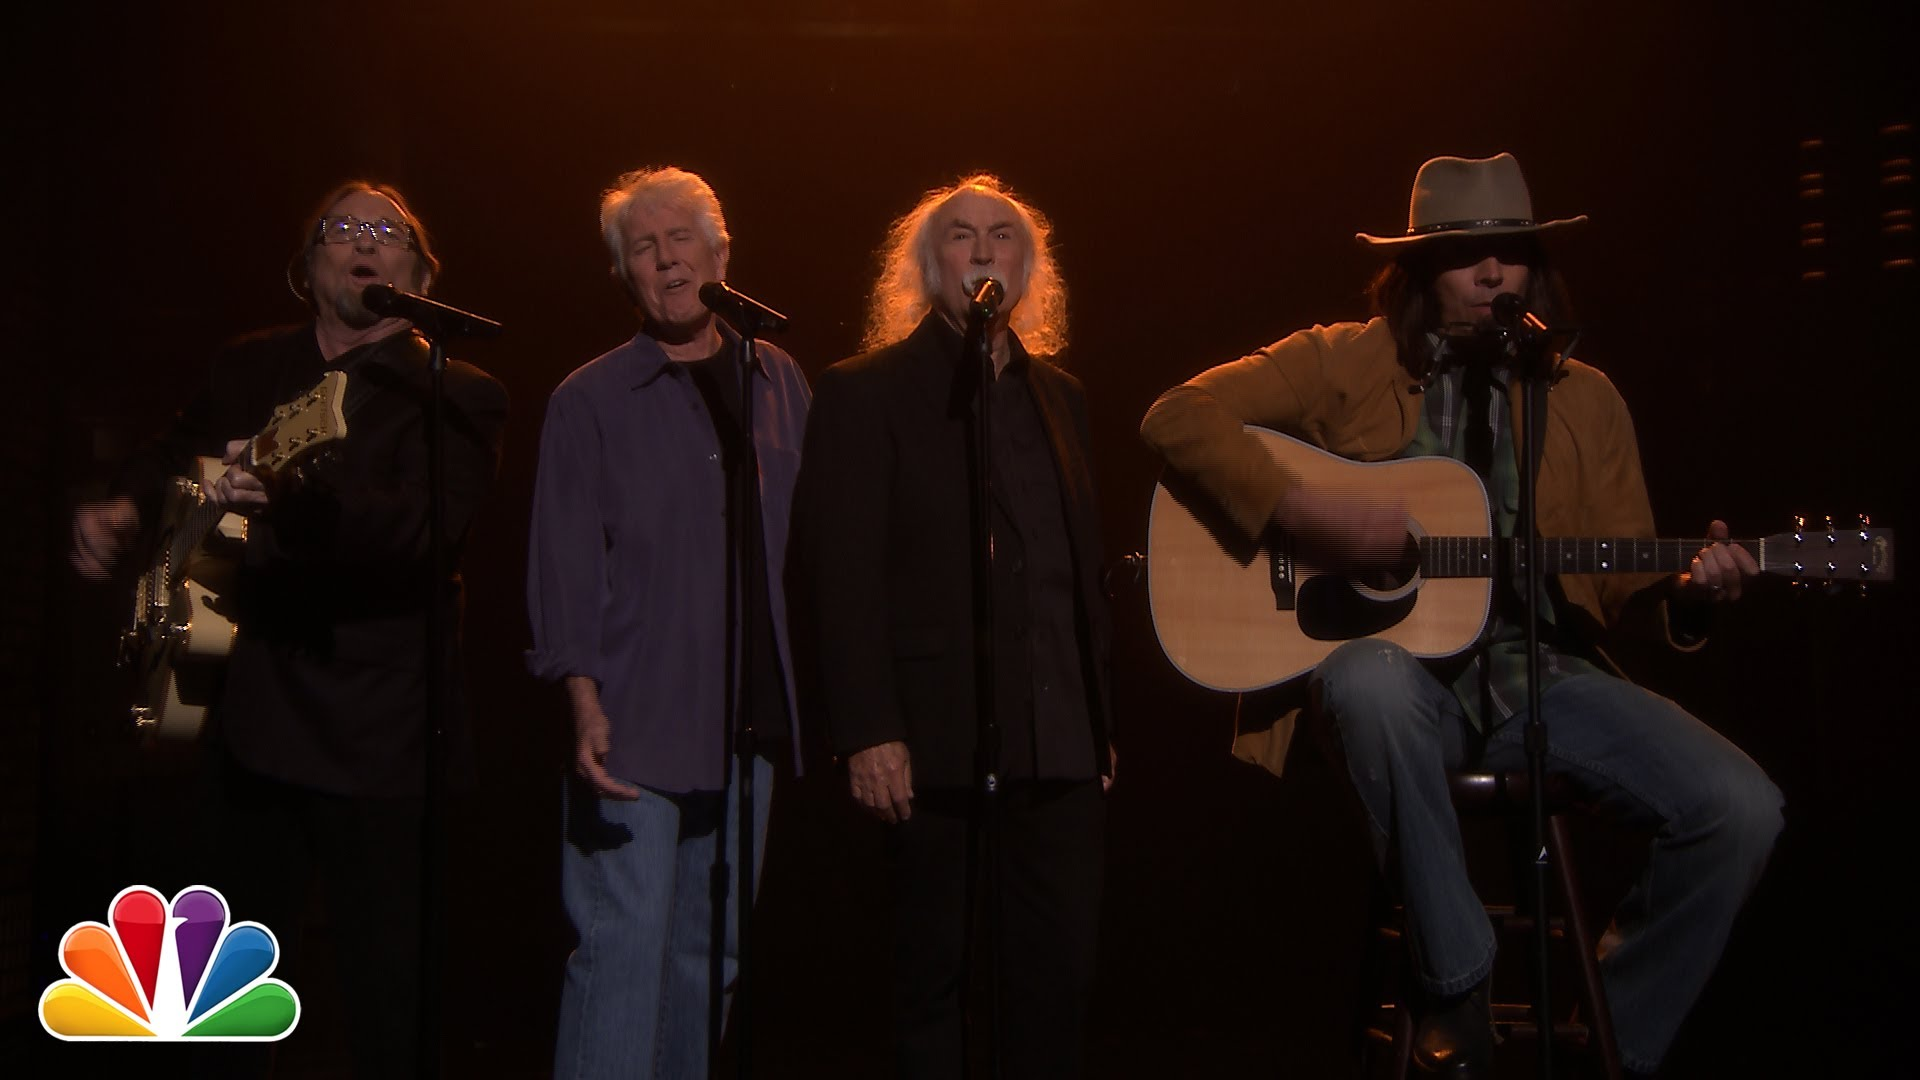 Jimmy Fallon as Neil Young Sings 'Fancy' by Iggy Azalea With the Real Crosby, Stills & Nash